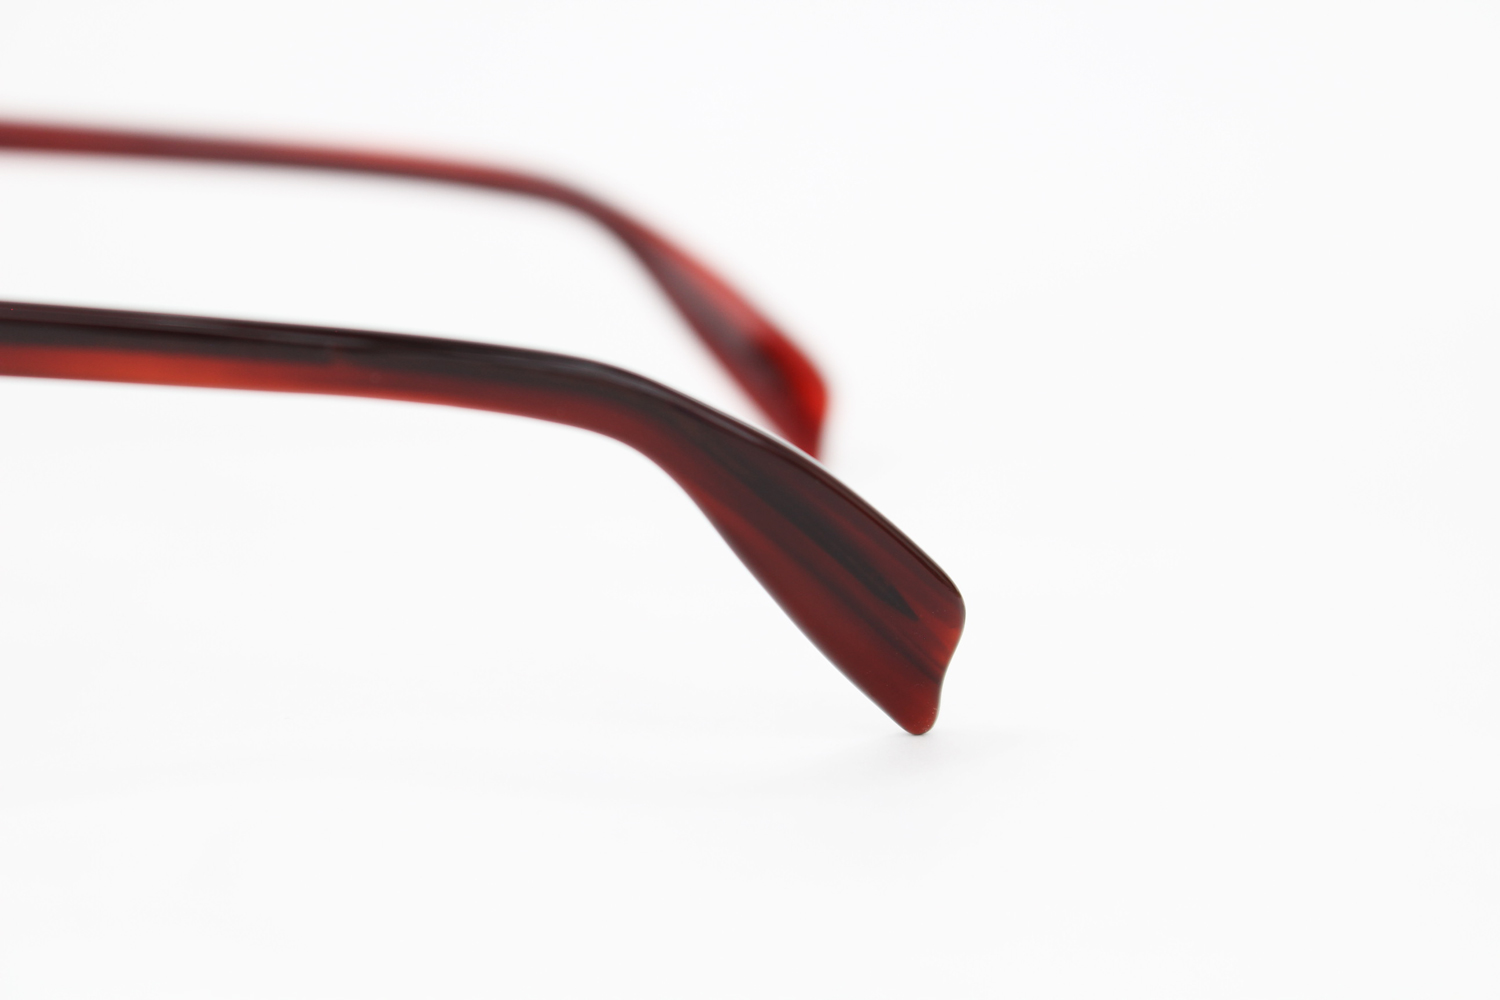 TS_Shuron_Optical_Company_Combination_1_10-12K_Gold_Filled_with_Cellulose_Acetate_red_4